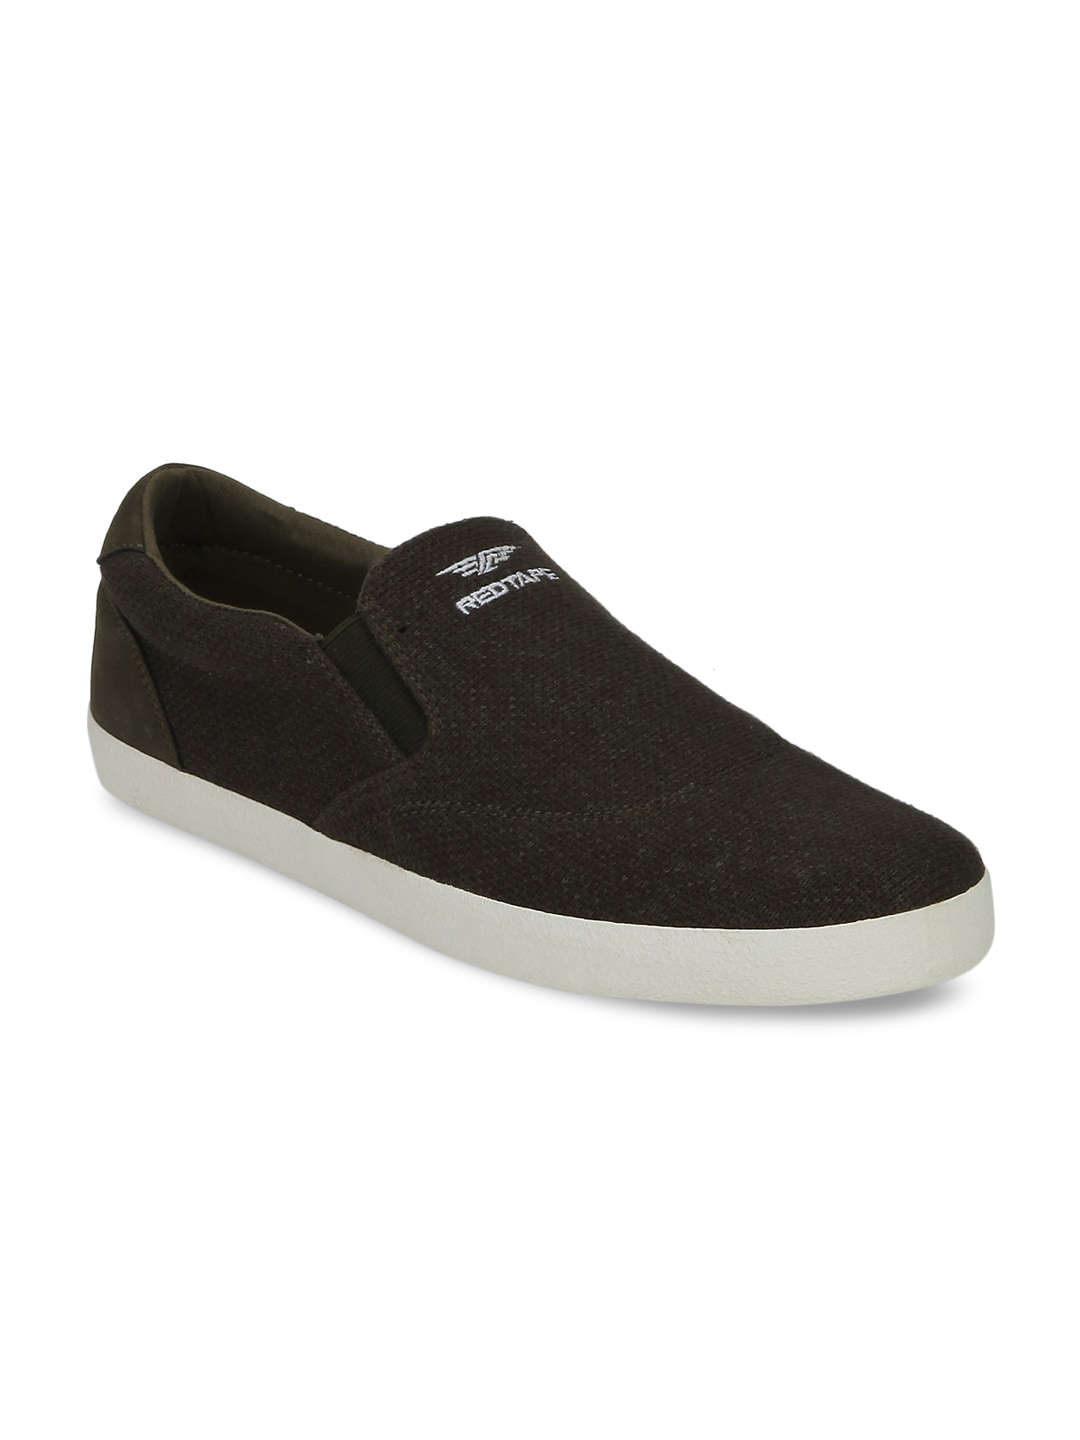 Red Tape Men Olive Slip-On Sneakers image